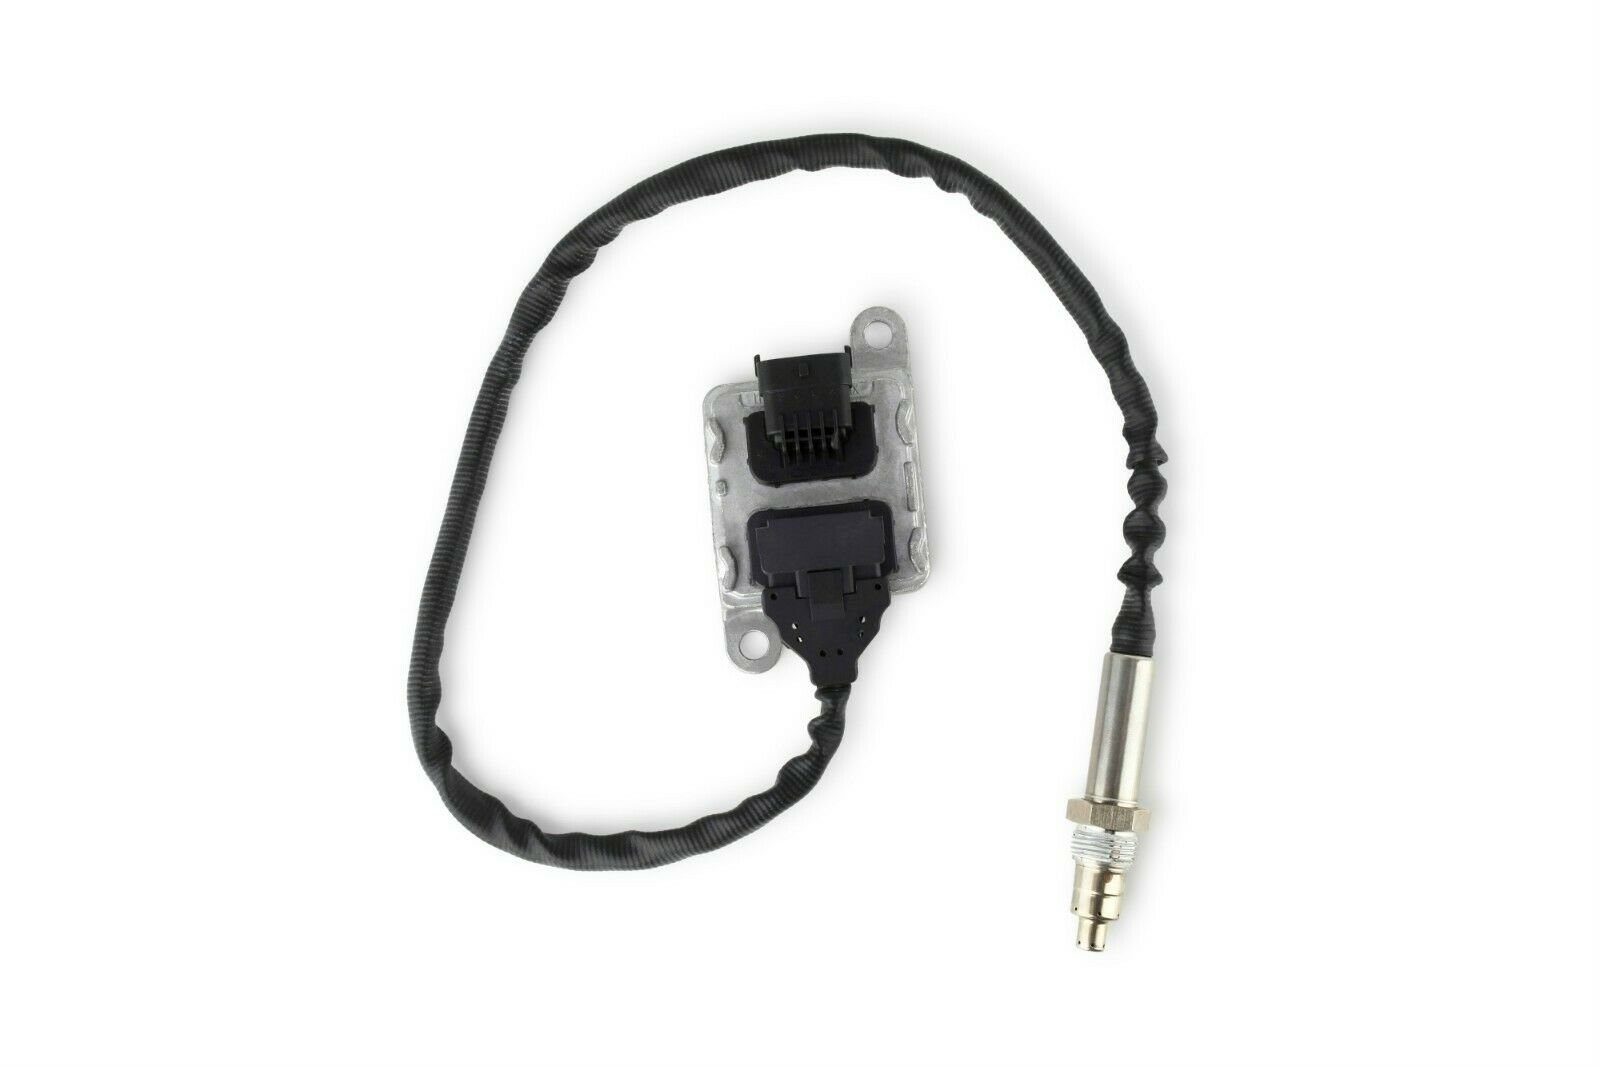 Volvo D13 Outlet Nox Sensor Location